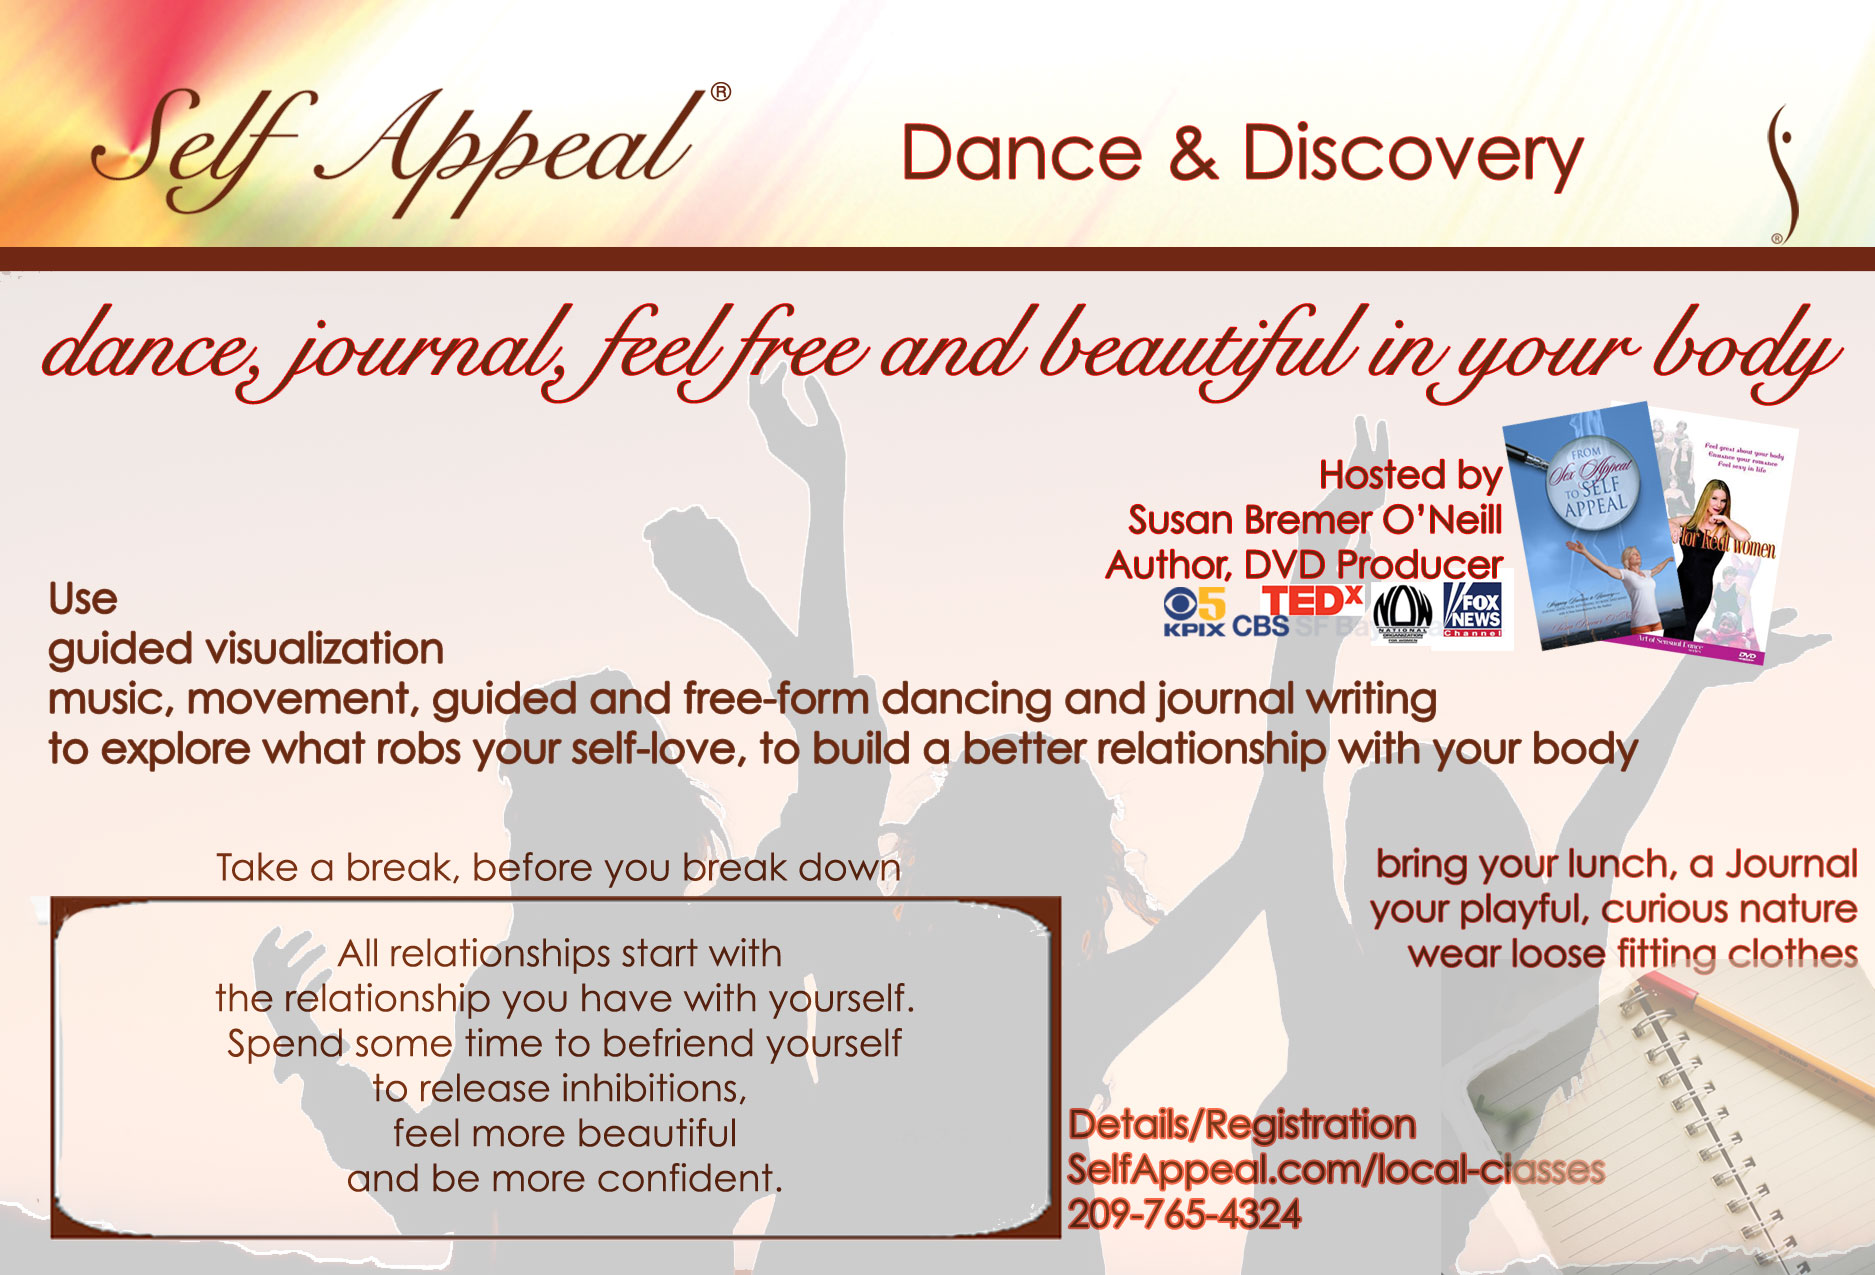 Self Appeal Dance & Discovery class details at SelfAppeal.com